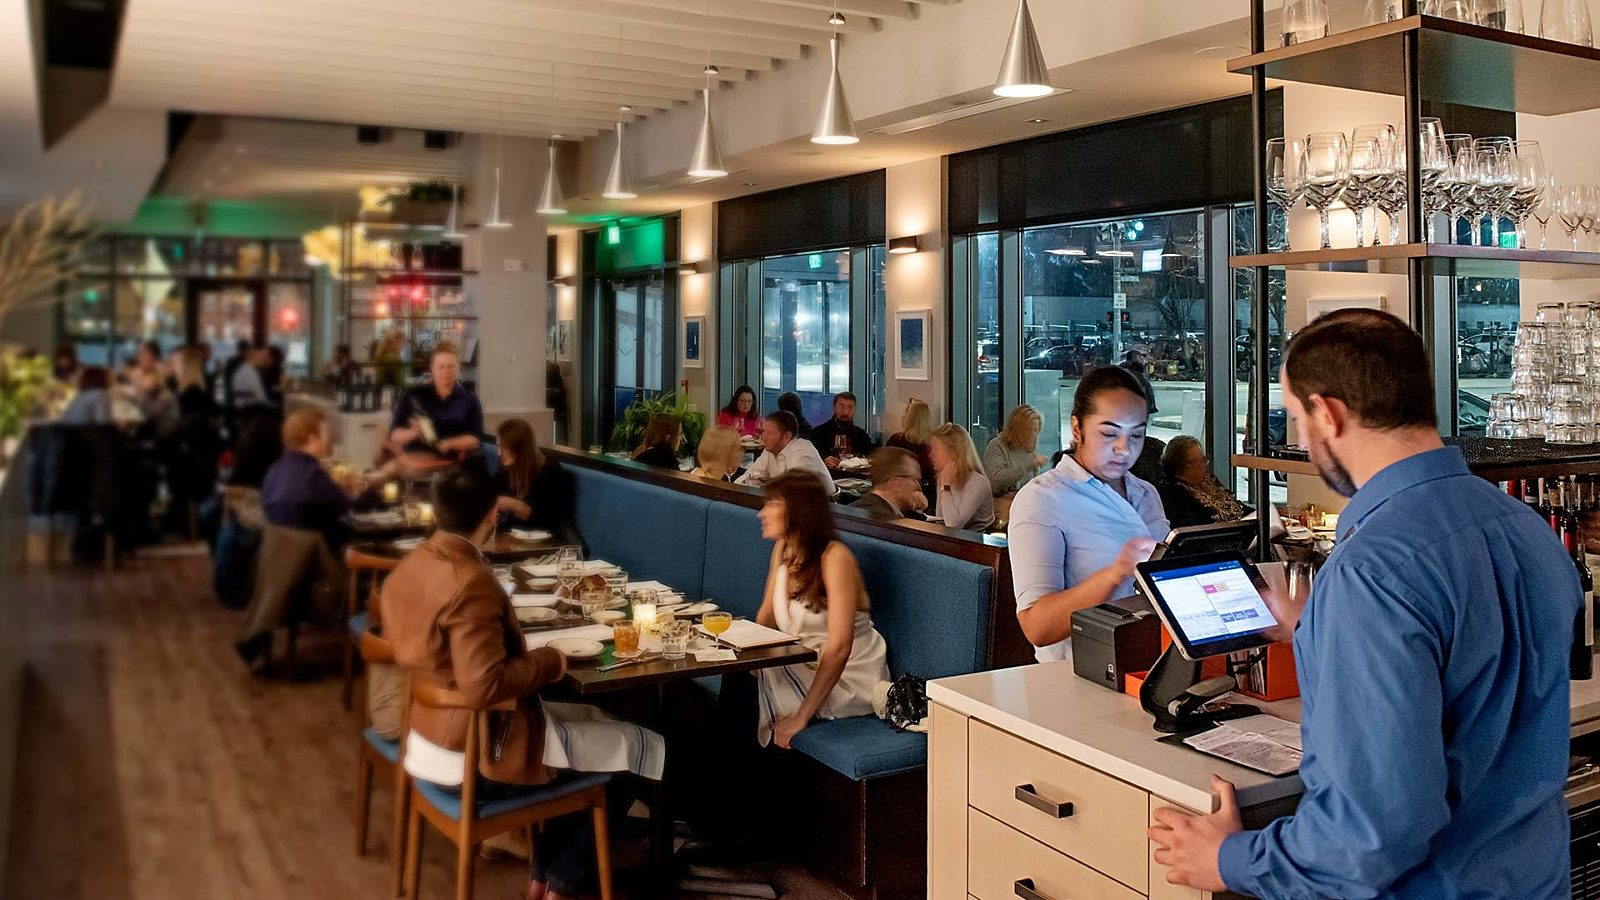 A busy restaurant dining area - How to Create a Restaurant Staff Schedule